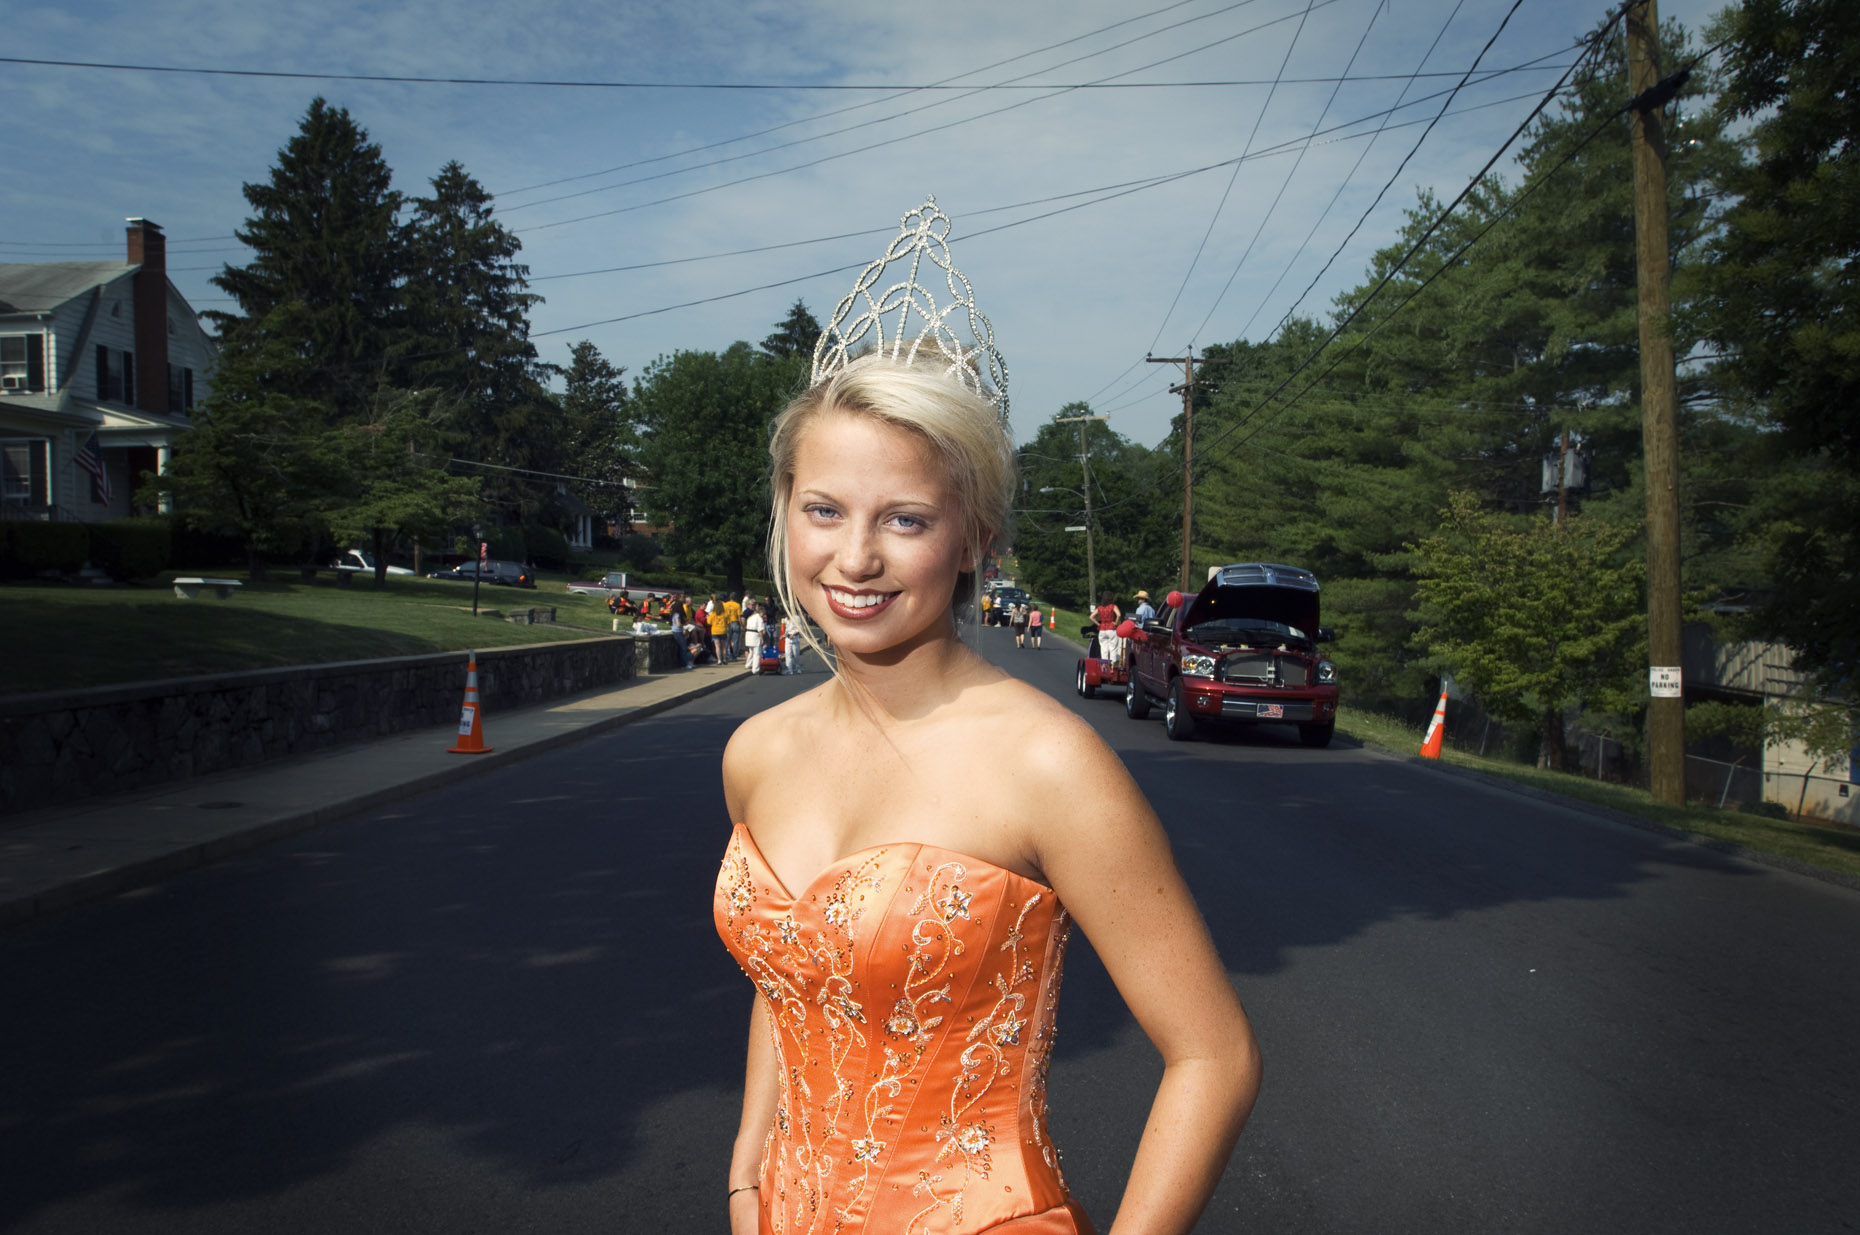 July 4th Staunton Beauty Queen copy